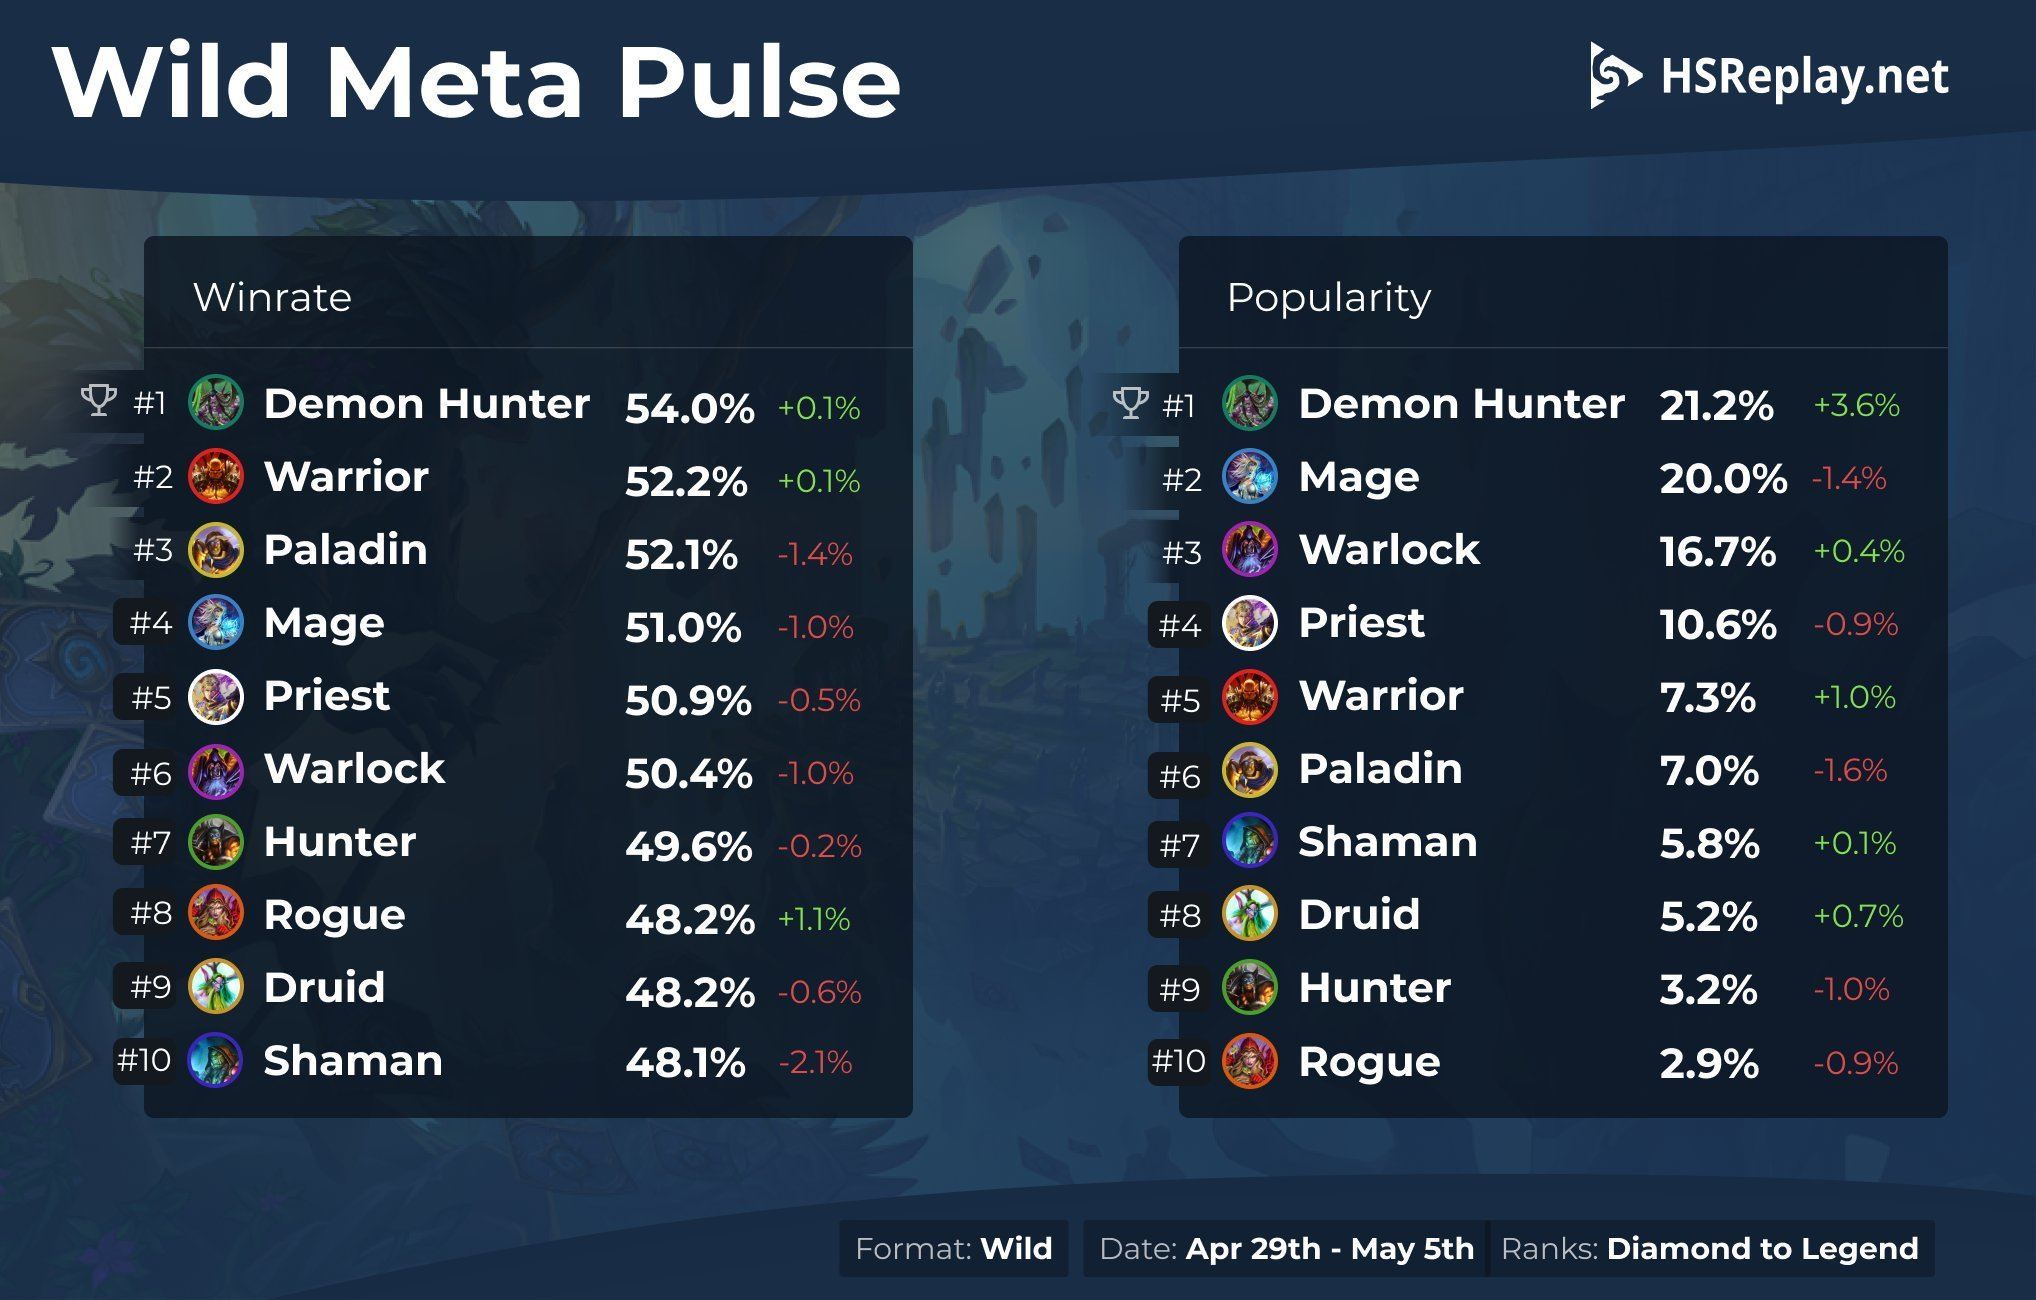 Report do Modo Livre de Hearthstone - Wild Meta Pulse entre 29 de abril e 05 de maio